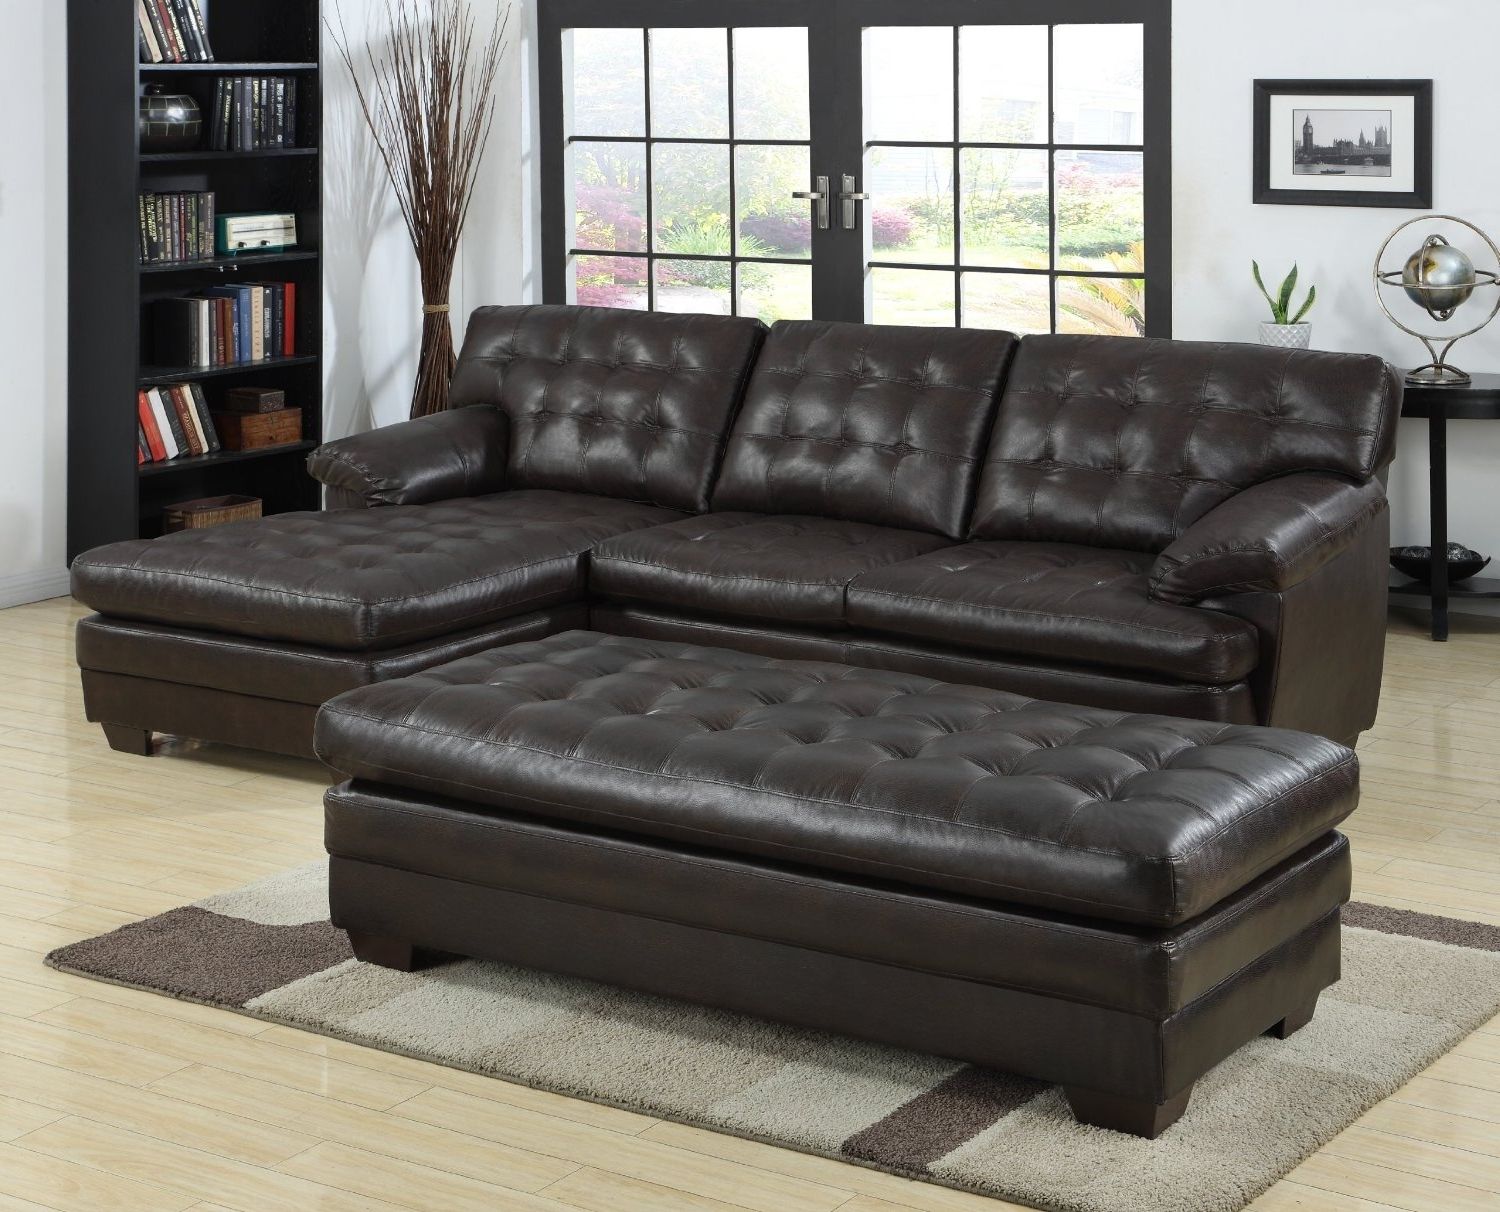 Black Tufted Leather Sectional Sofa With Chaise And Bench Seat With 2019 Tufted Sectional Sofas With Chaise (View 7 of 20)